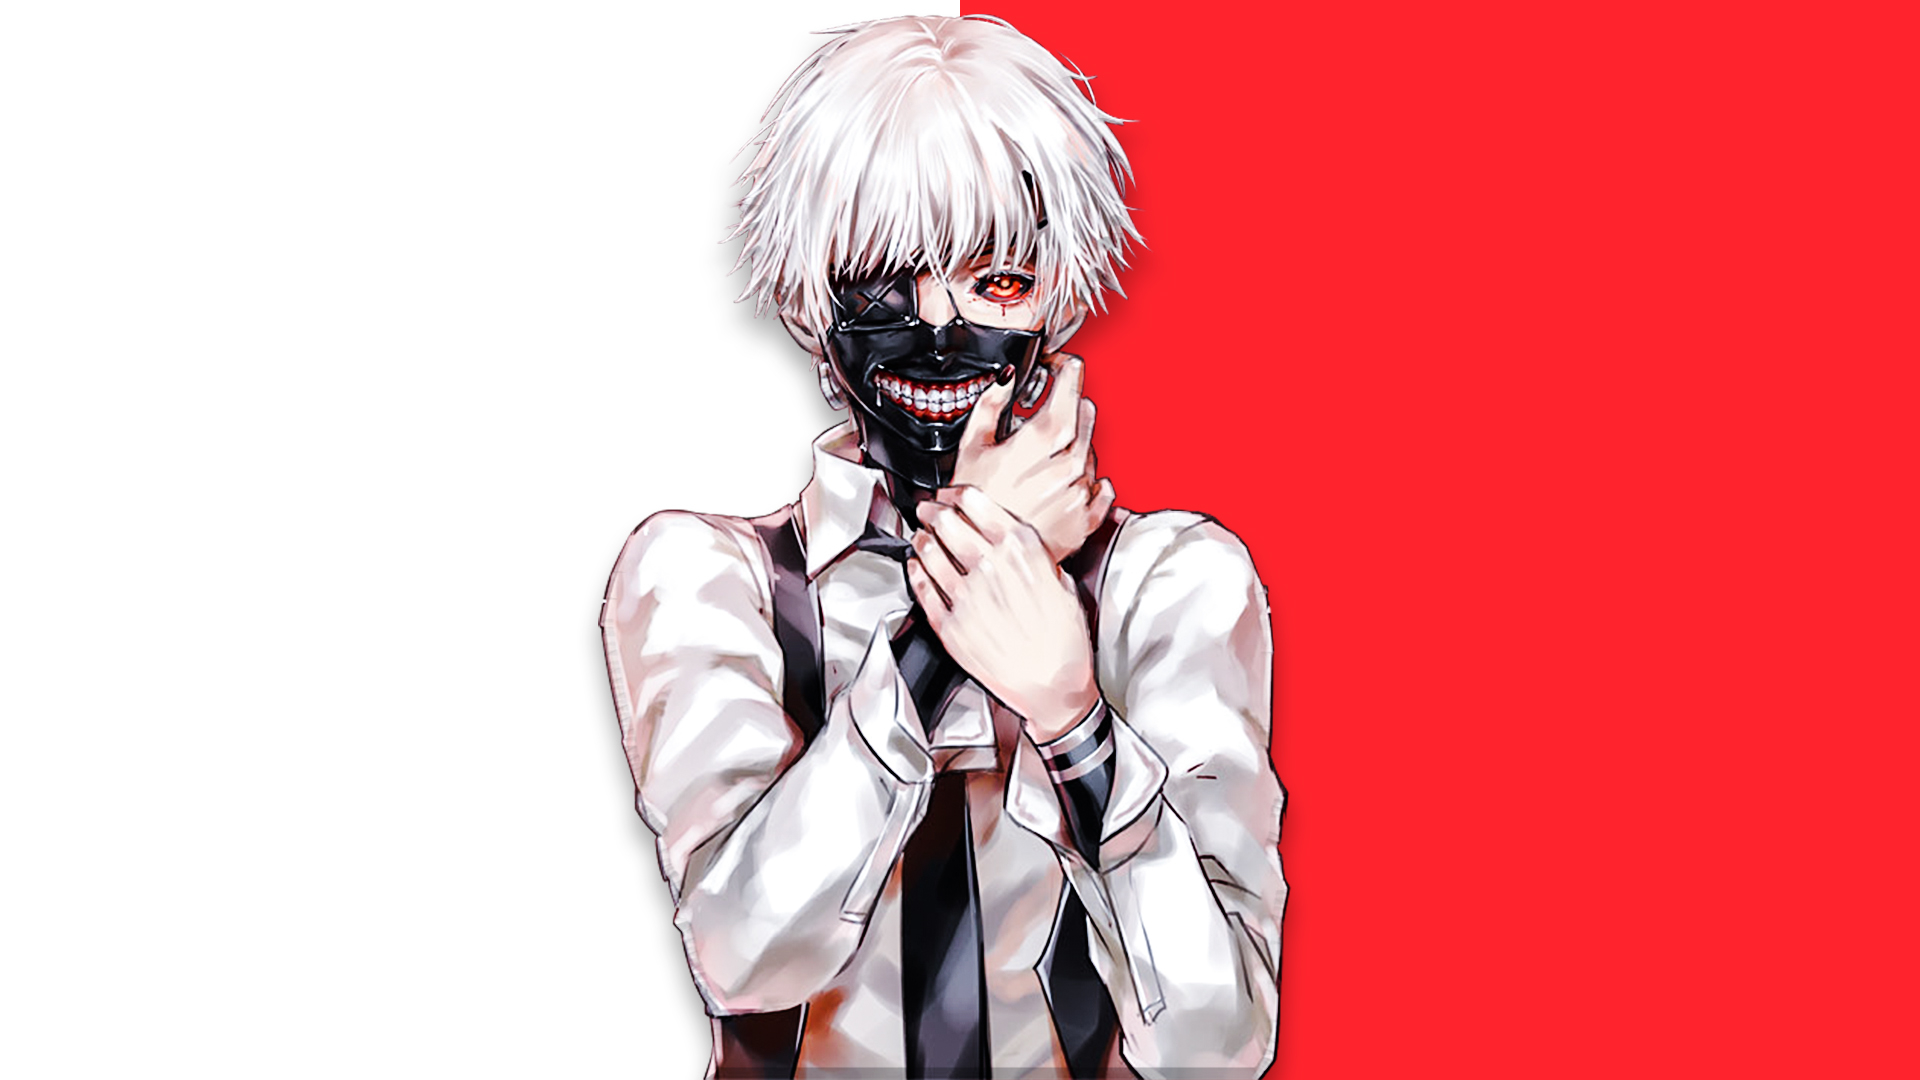 Ken Kaneki Tokyo Ghoul Art Wallpaper Hd Anime 4k Wallpapers